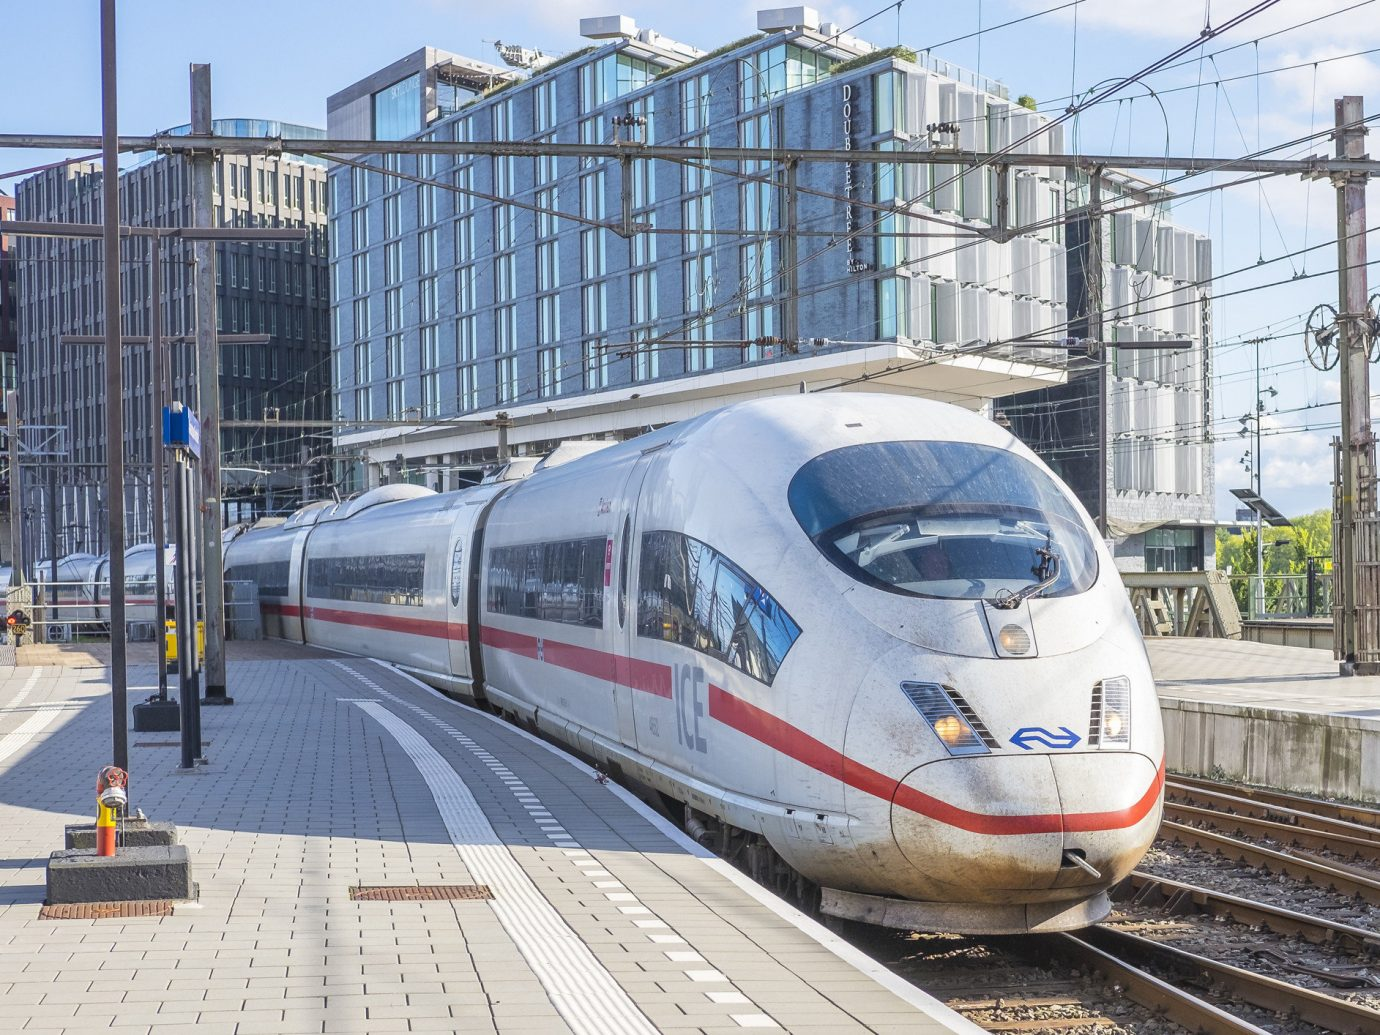 Travel Tips train track outdoor high speed rail transport metropolitan area station rail transport platform mode of transport train station urban area rolling stock public transport railroad car tgv locomotive metropolis rapid transit maglev vehicle passenger car pulling subway